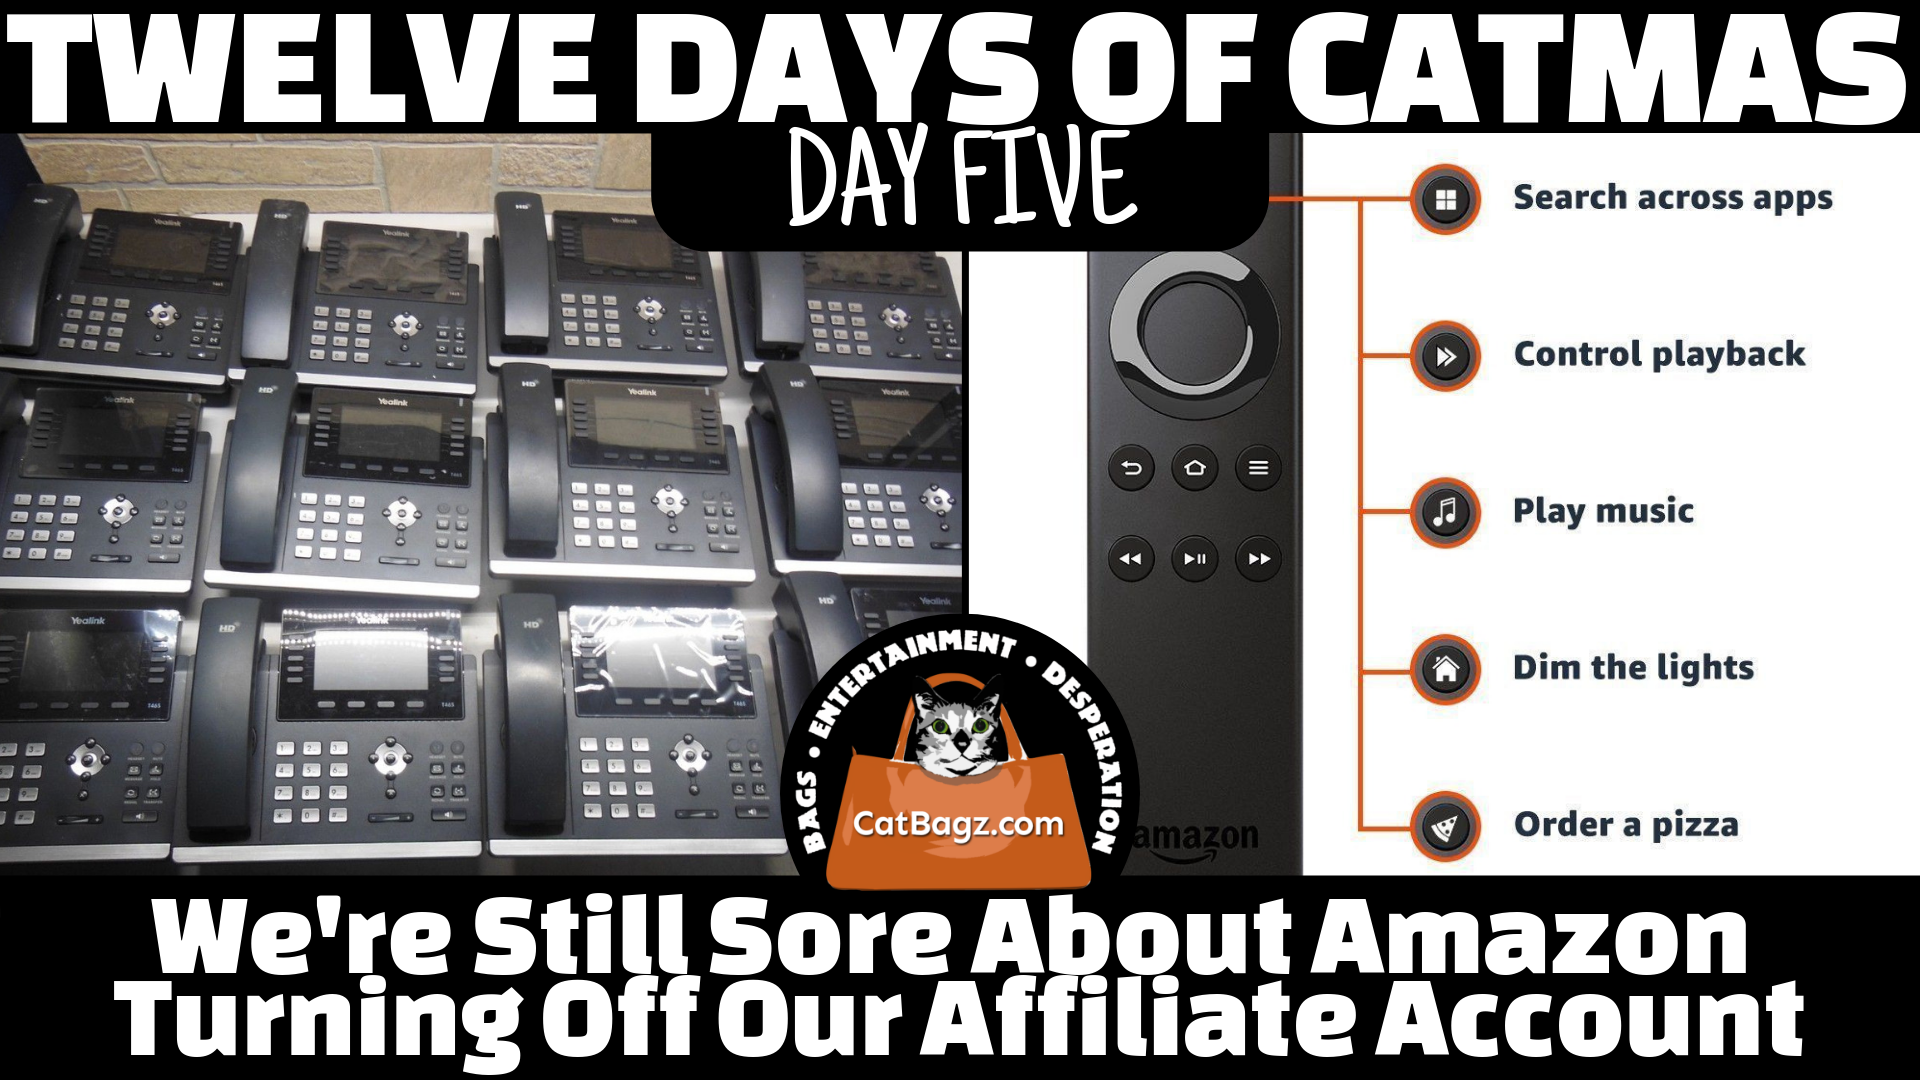 Twelve Days of Catmas - Day Five - We're still sore about Amazon turning off our affiliate account.